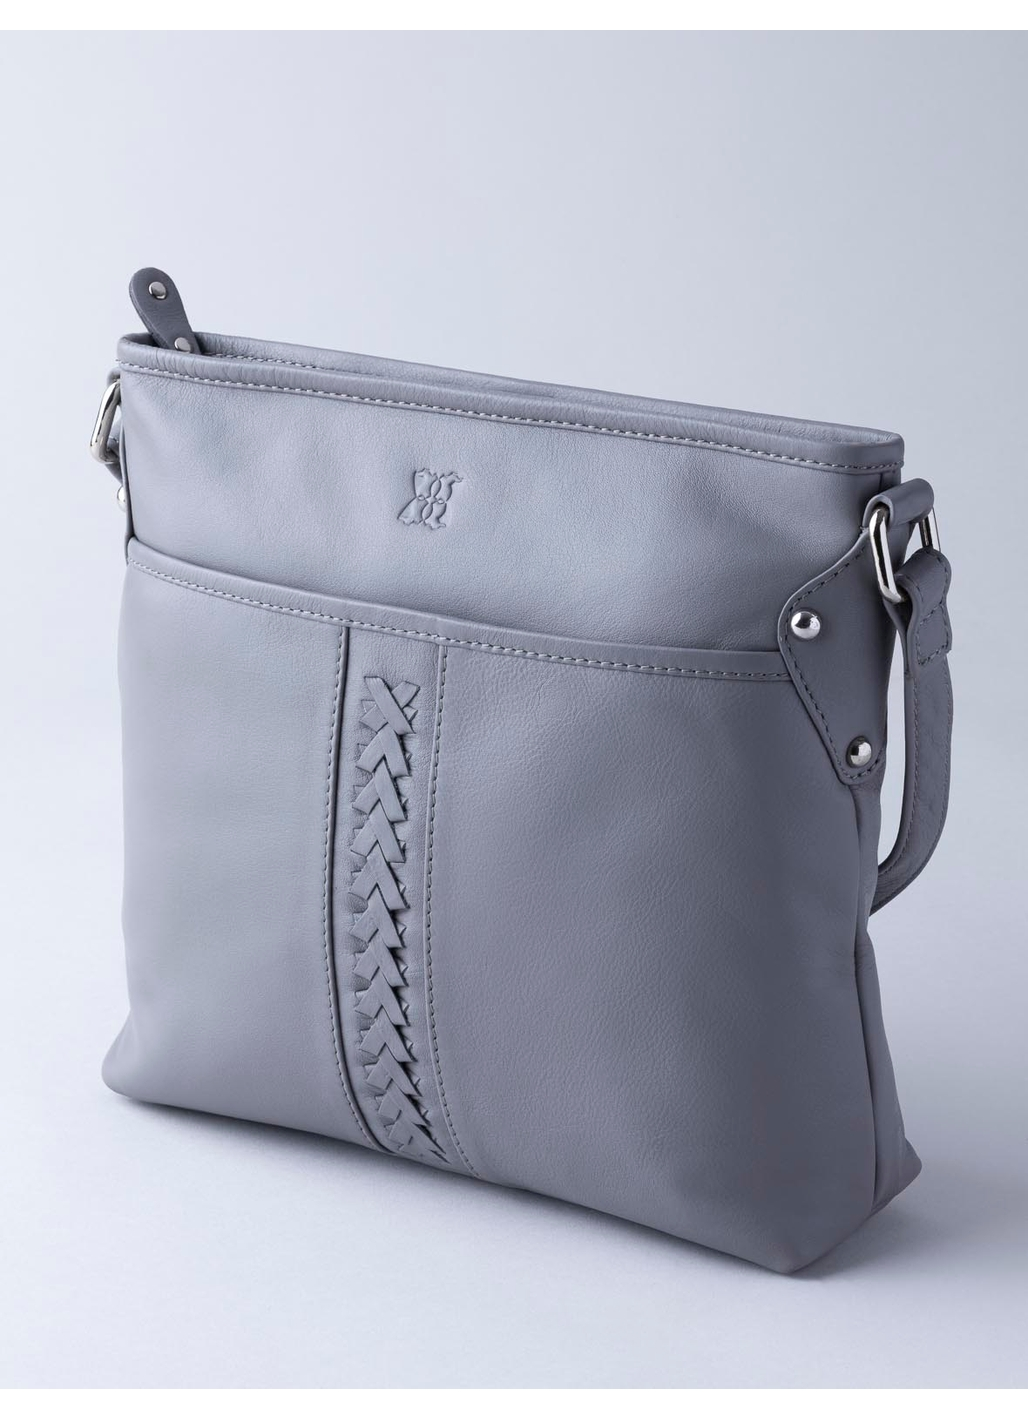 Farlam Plaited Leather Cross Body Bag in Grey